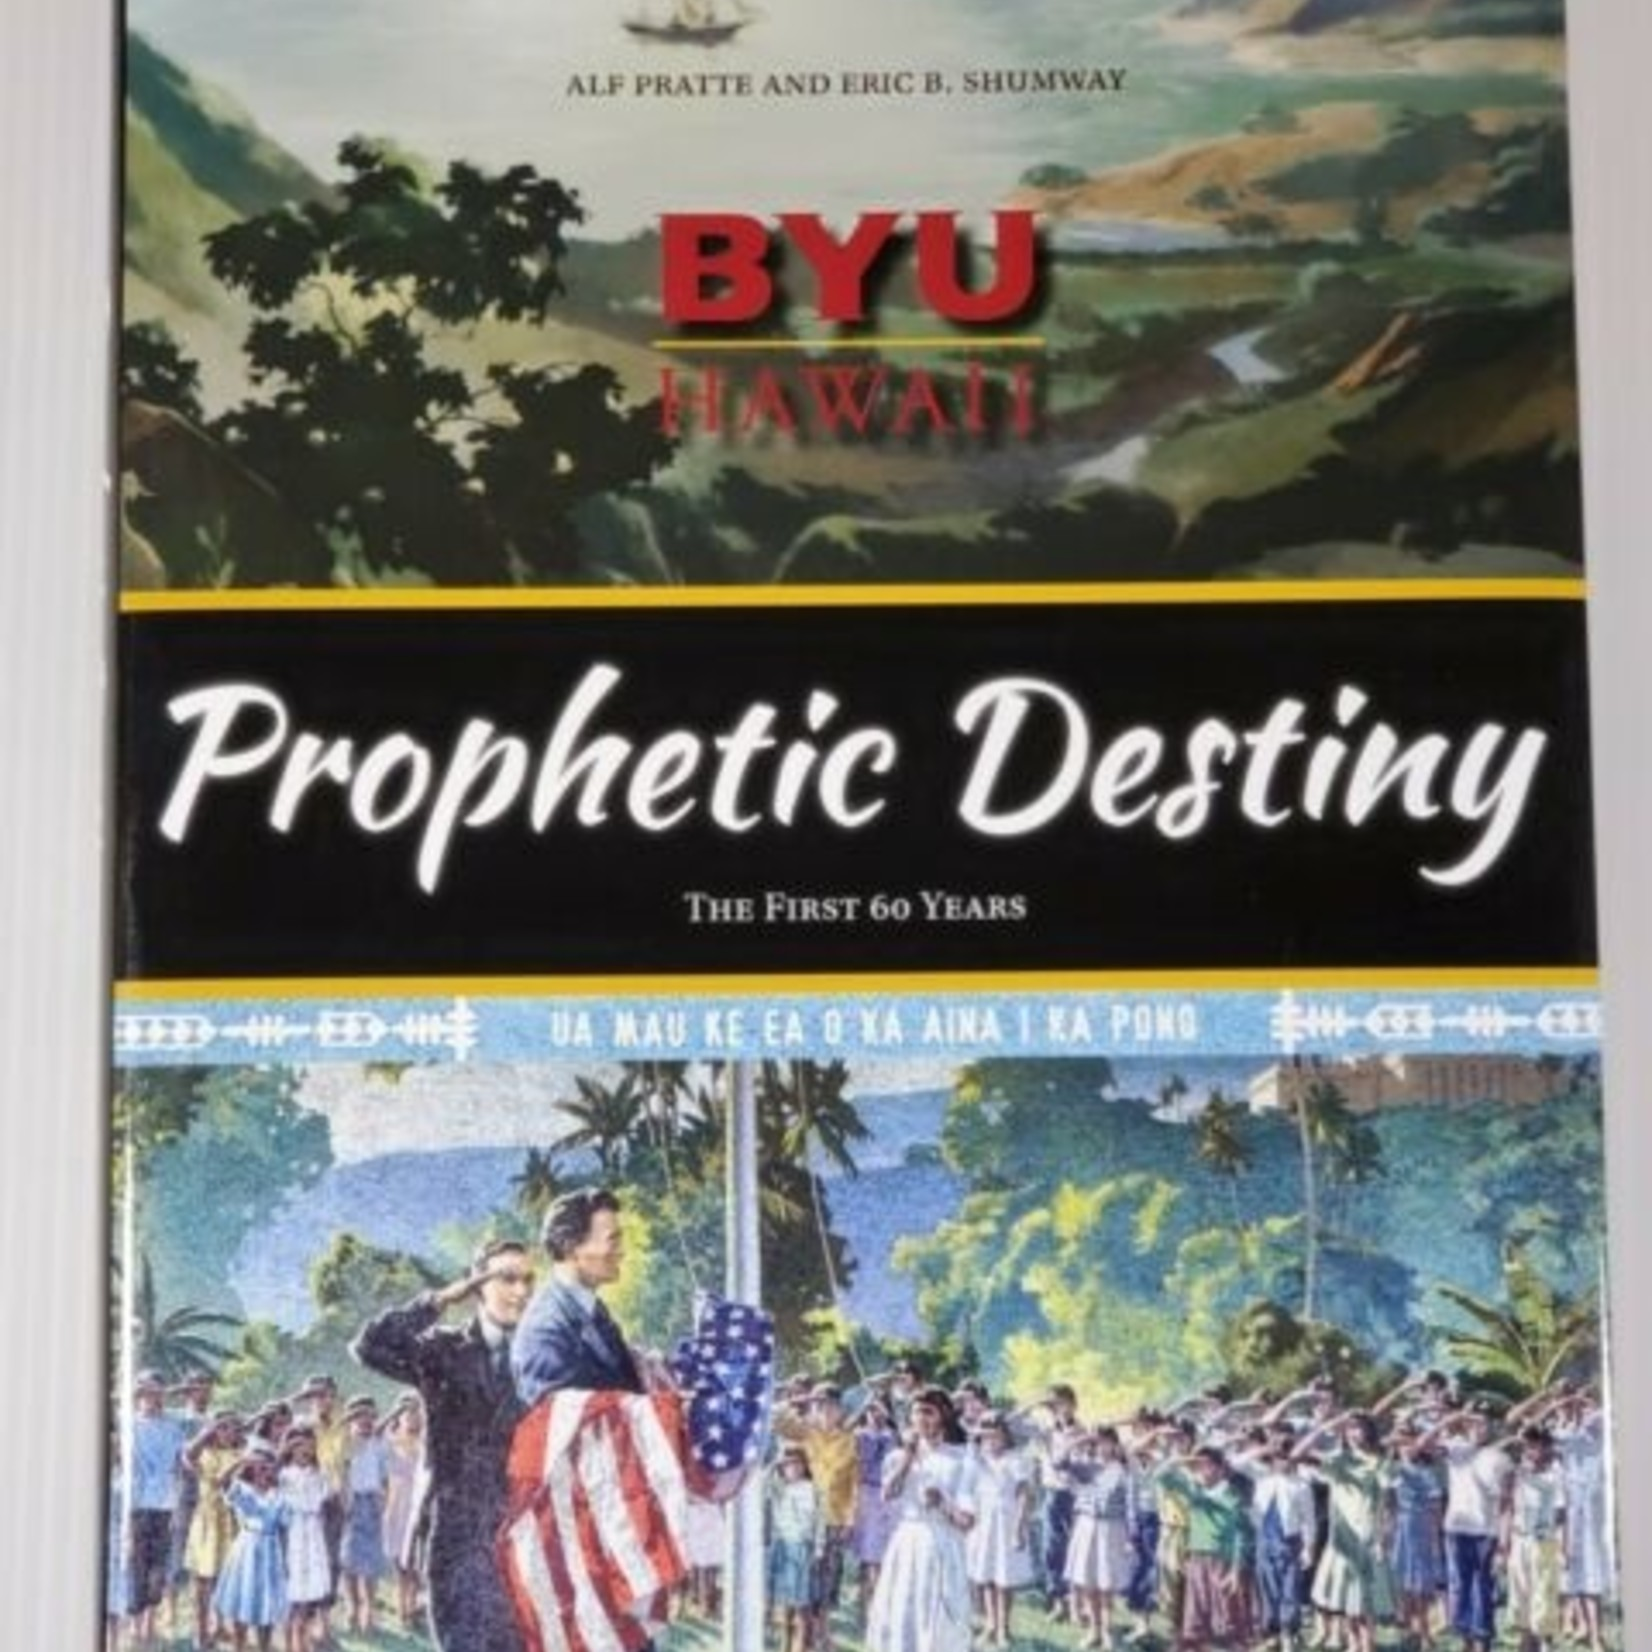 BYU Hawaii Prophetic Destiny: The First 60 Years